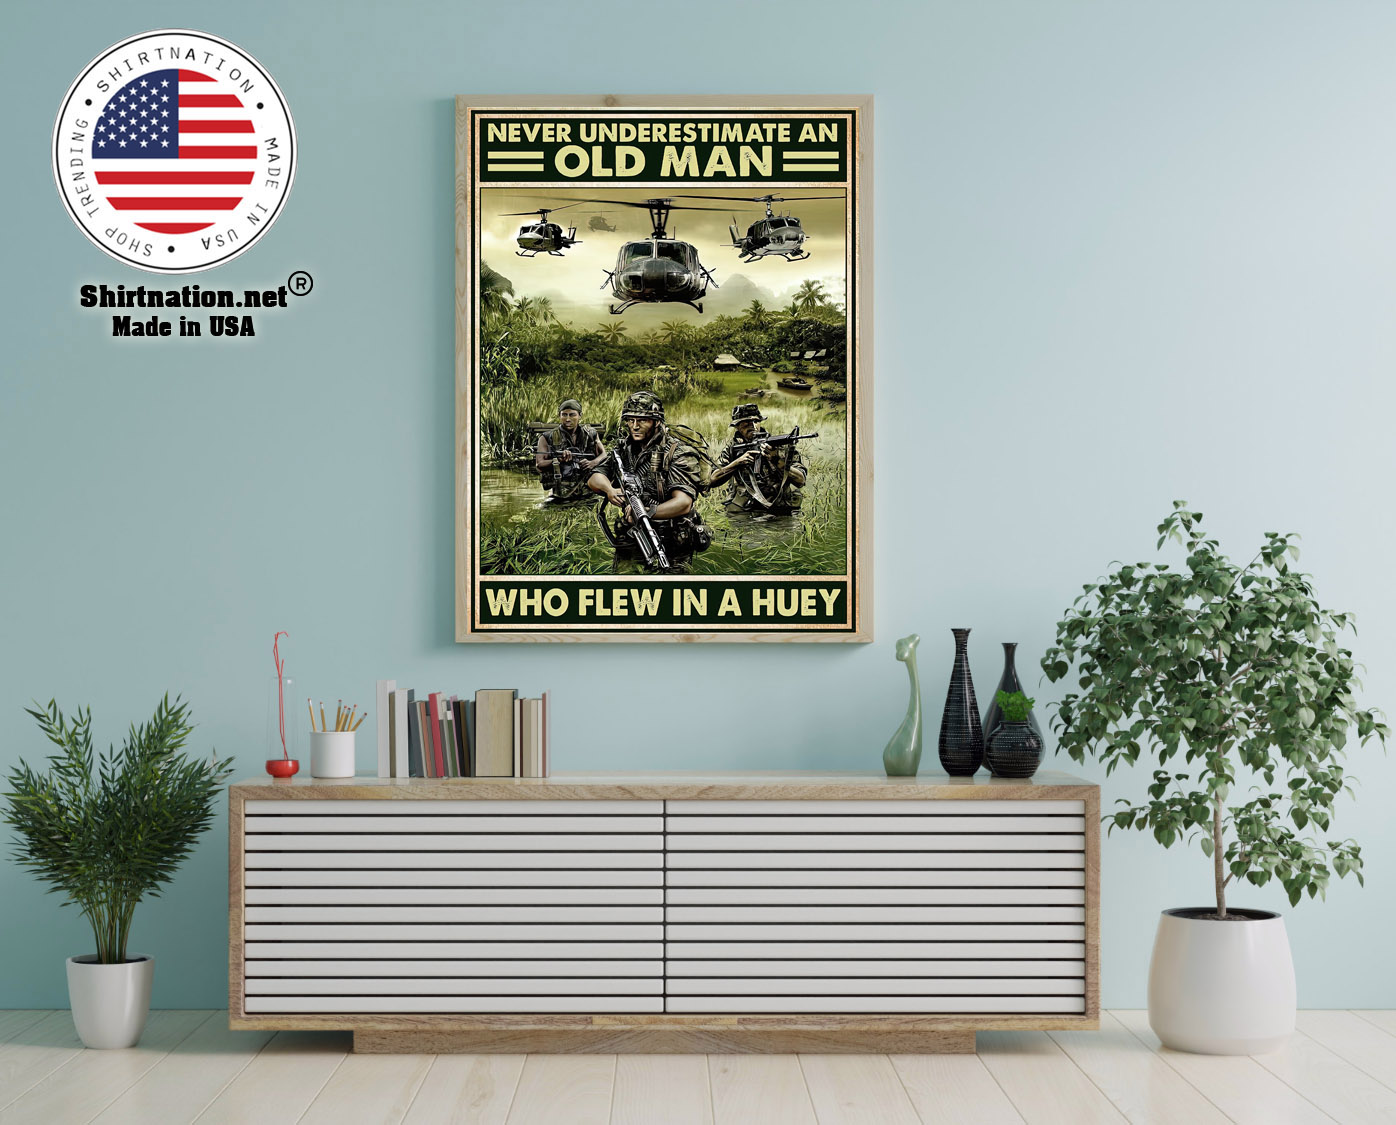 Never underestimate an old man who flew in a huey poster 12